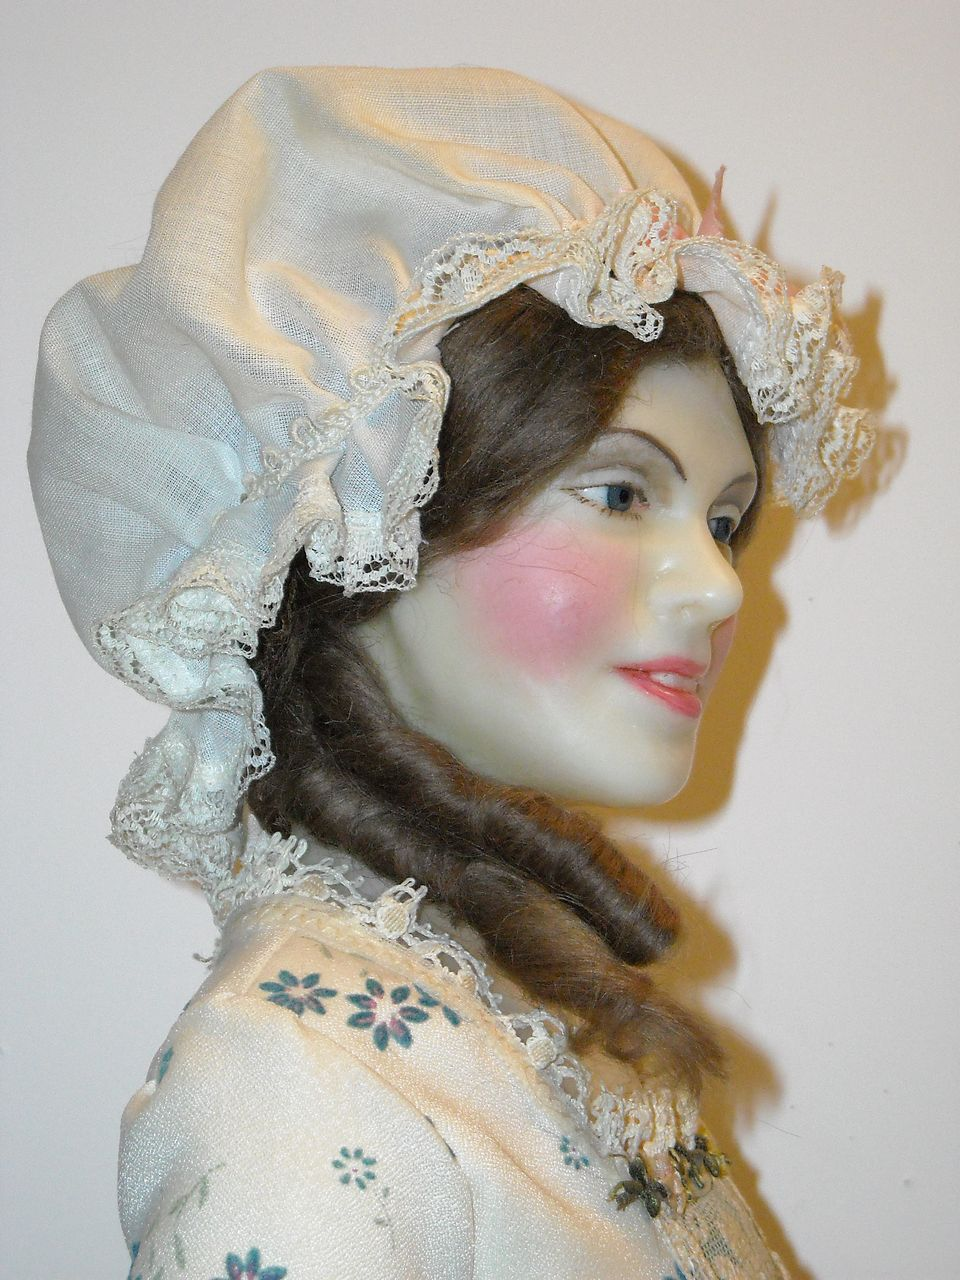 24 Quot Wax Portrait Doll Betsy Ross By Lewis Sorensen From